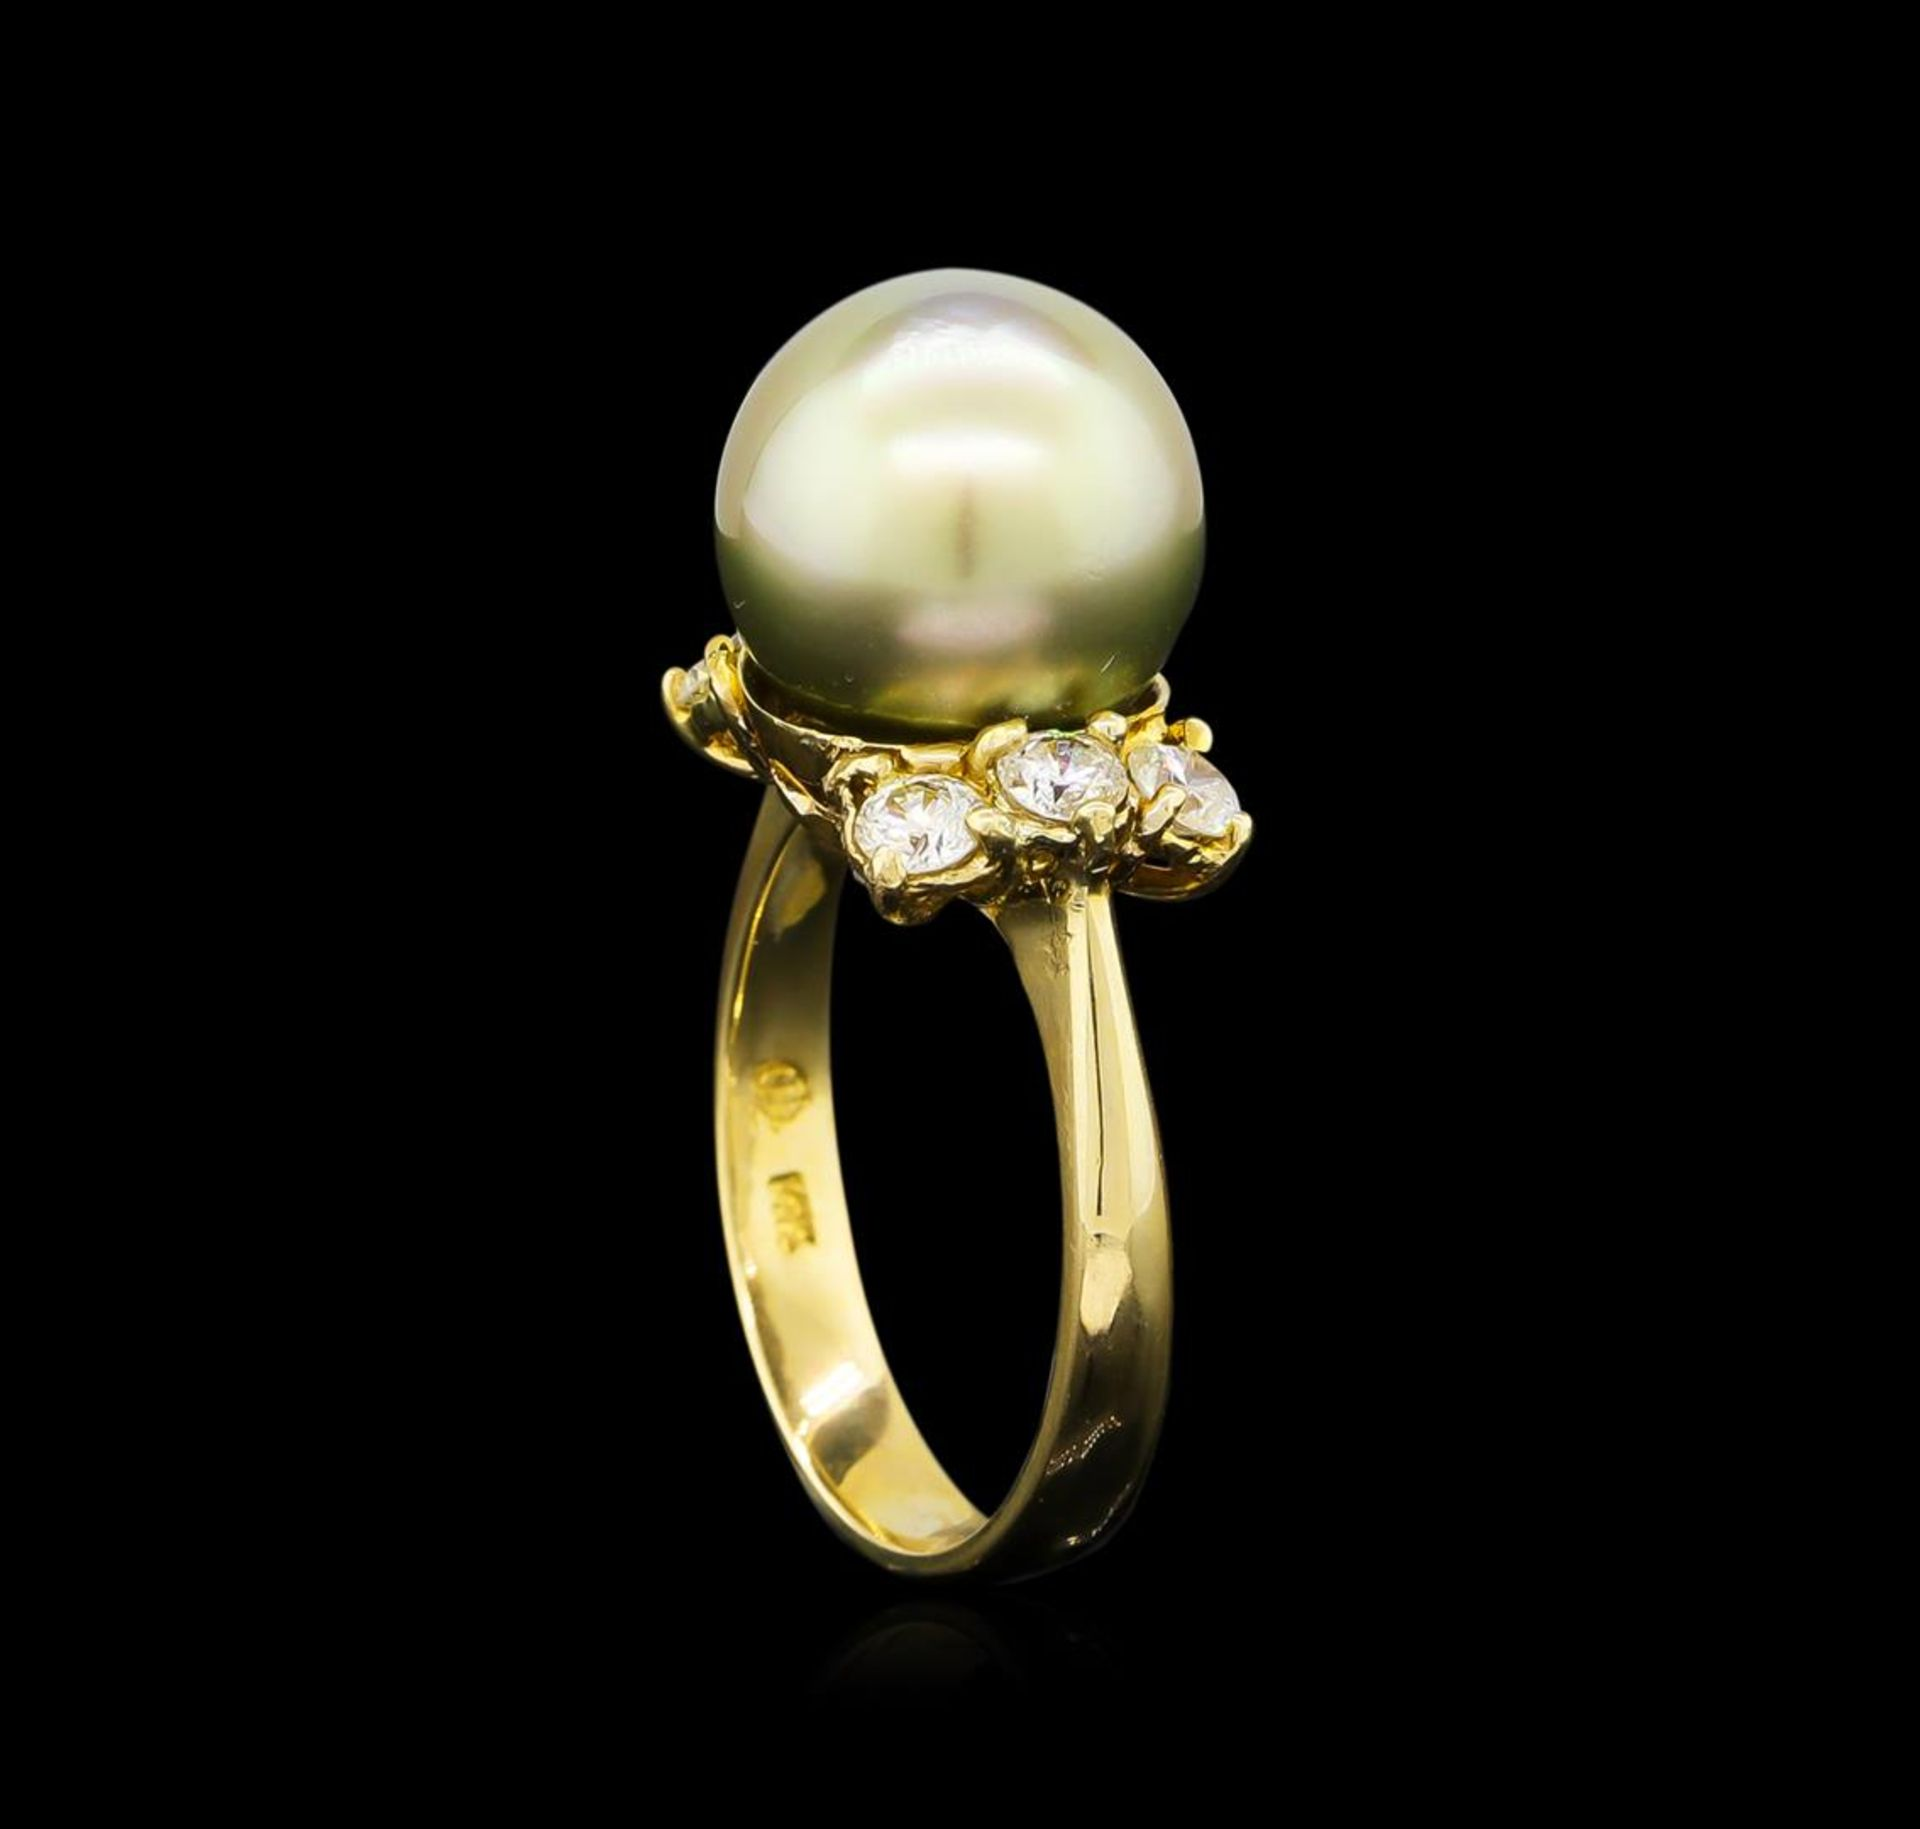 0.66 ctw Pearl and Diamond Ring - 14KT Yellow Gold - Image 4 of 4